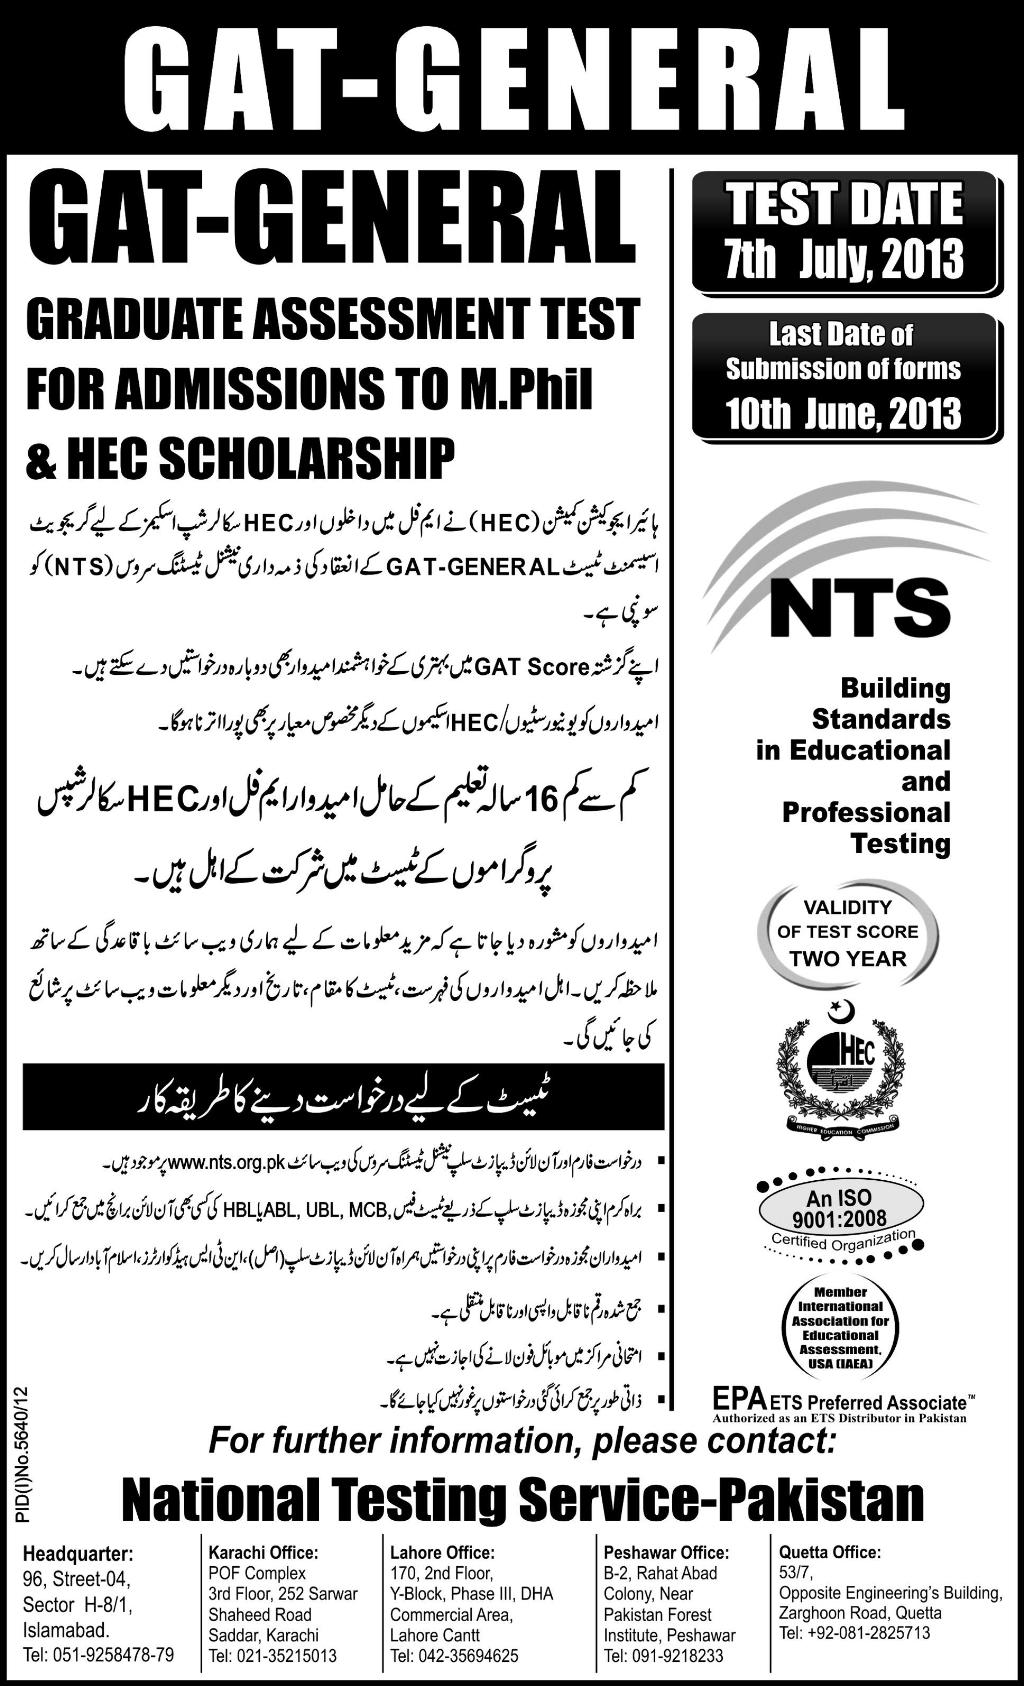 NTS GAT-General Test Schedule 2013 Registration Form Download for HEC Scholarships & Admissions to M.Phil.